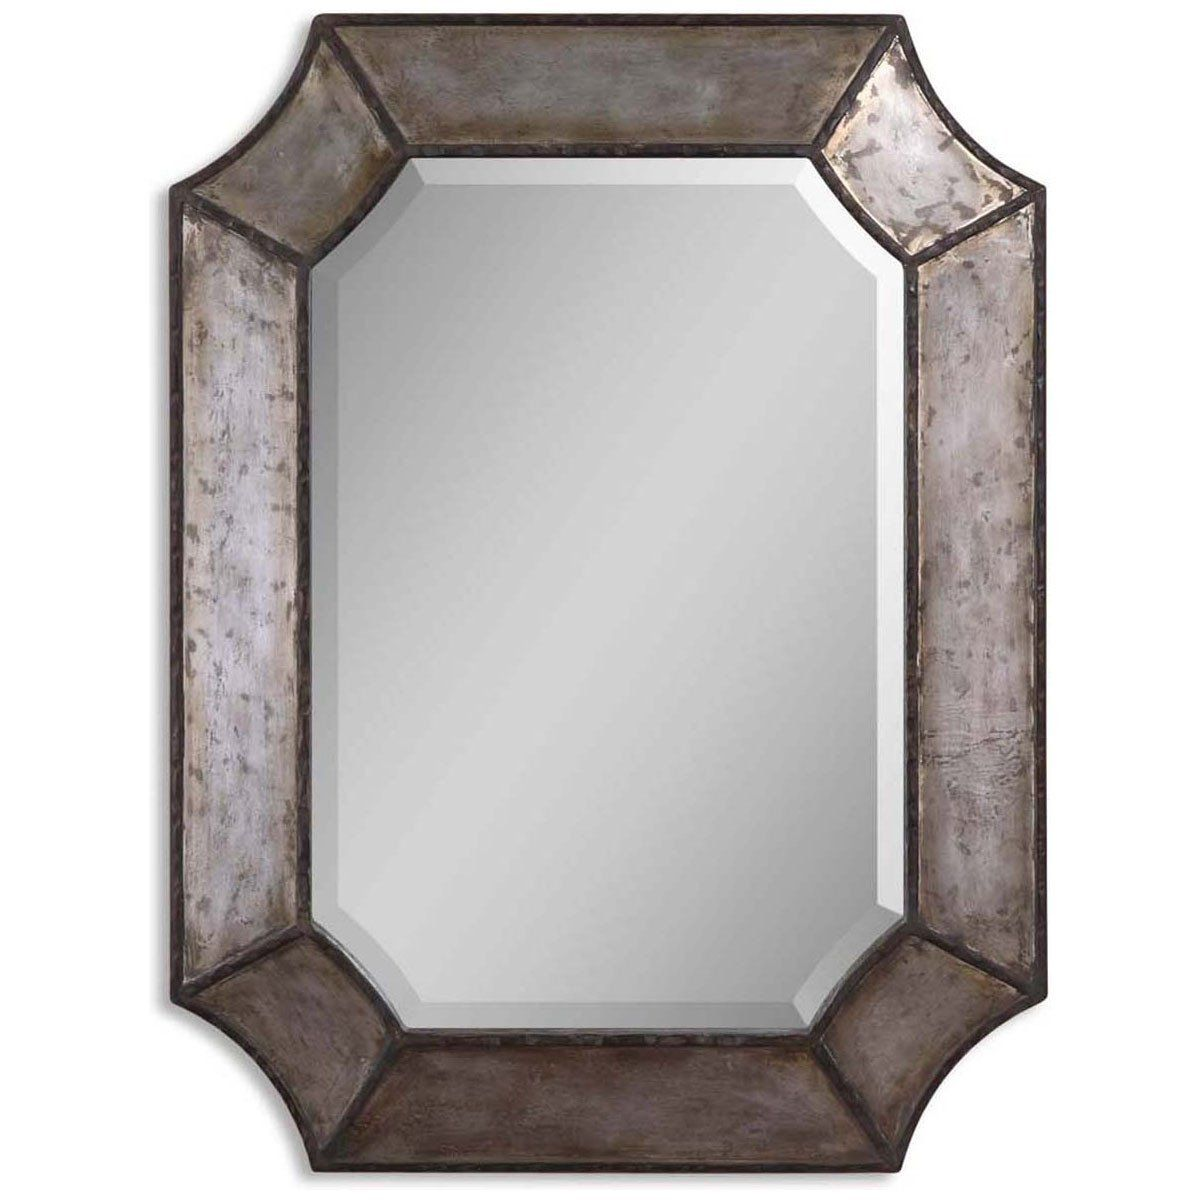 Uttermost Elliot Distressed Aluminum Mirror 13628 B Mirror Rustic Frames Mirrors Wayfair